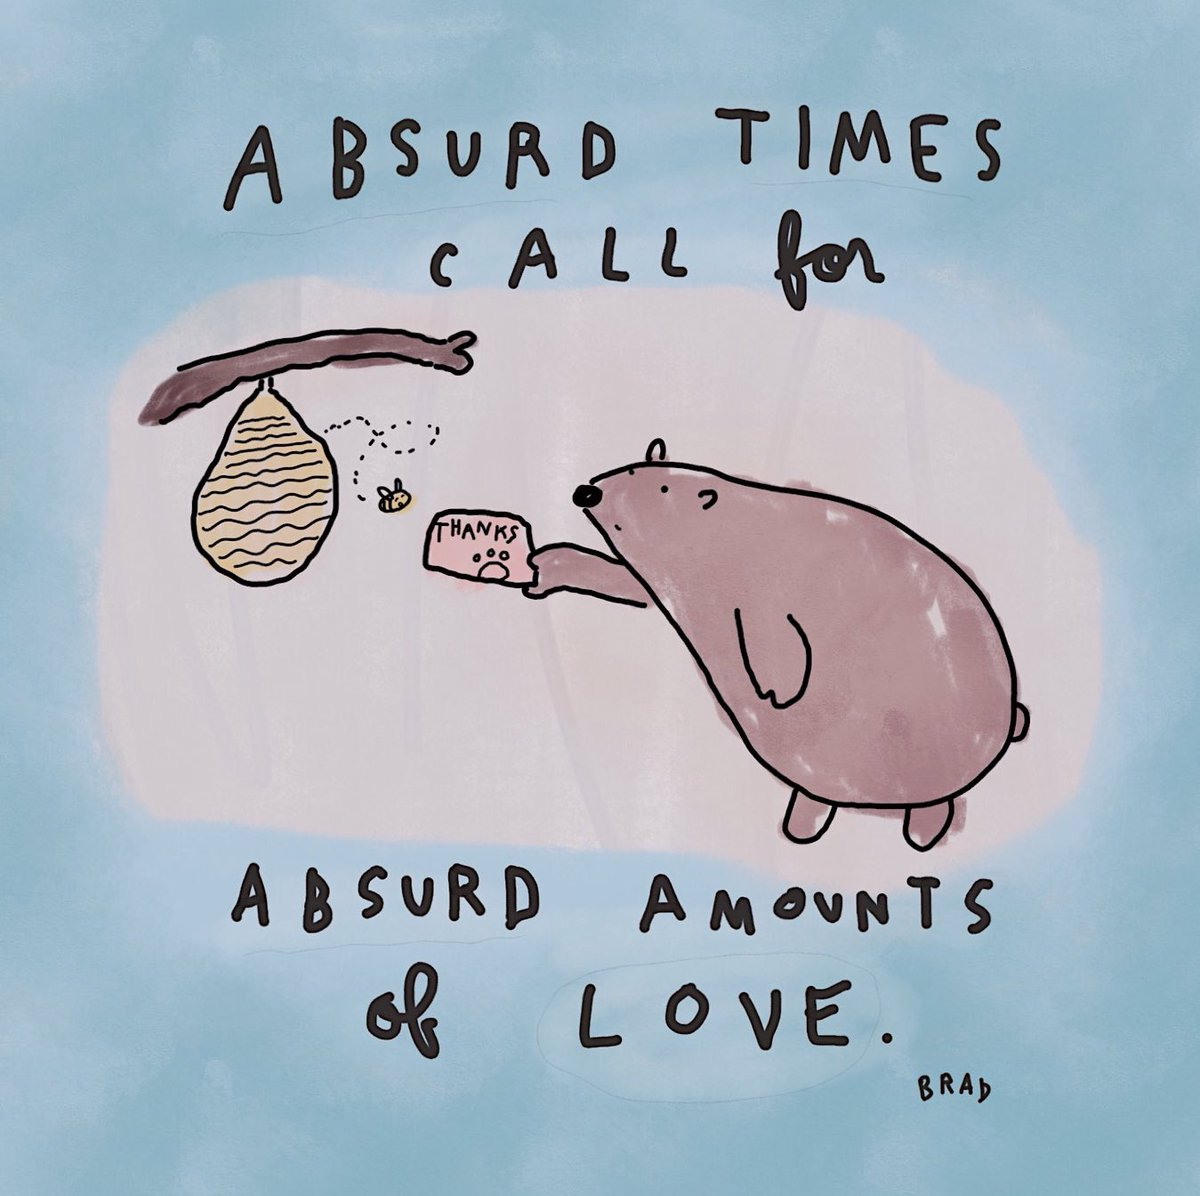 Absurd times call for absurd amounts of love.